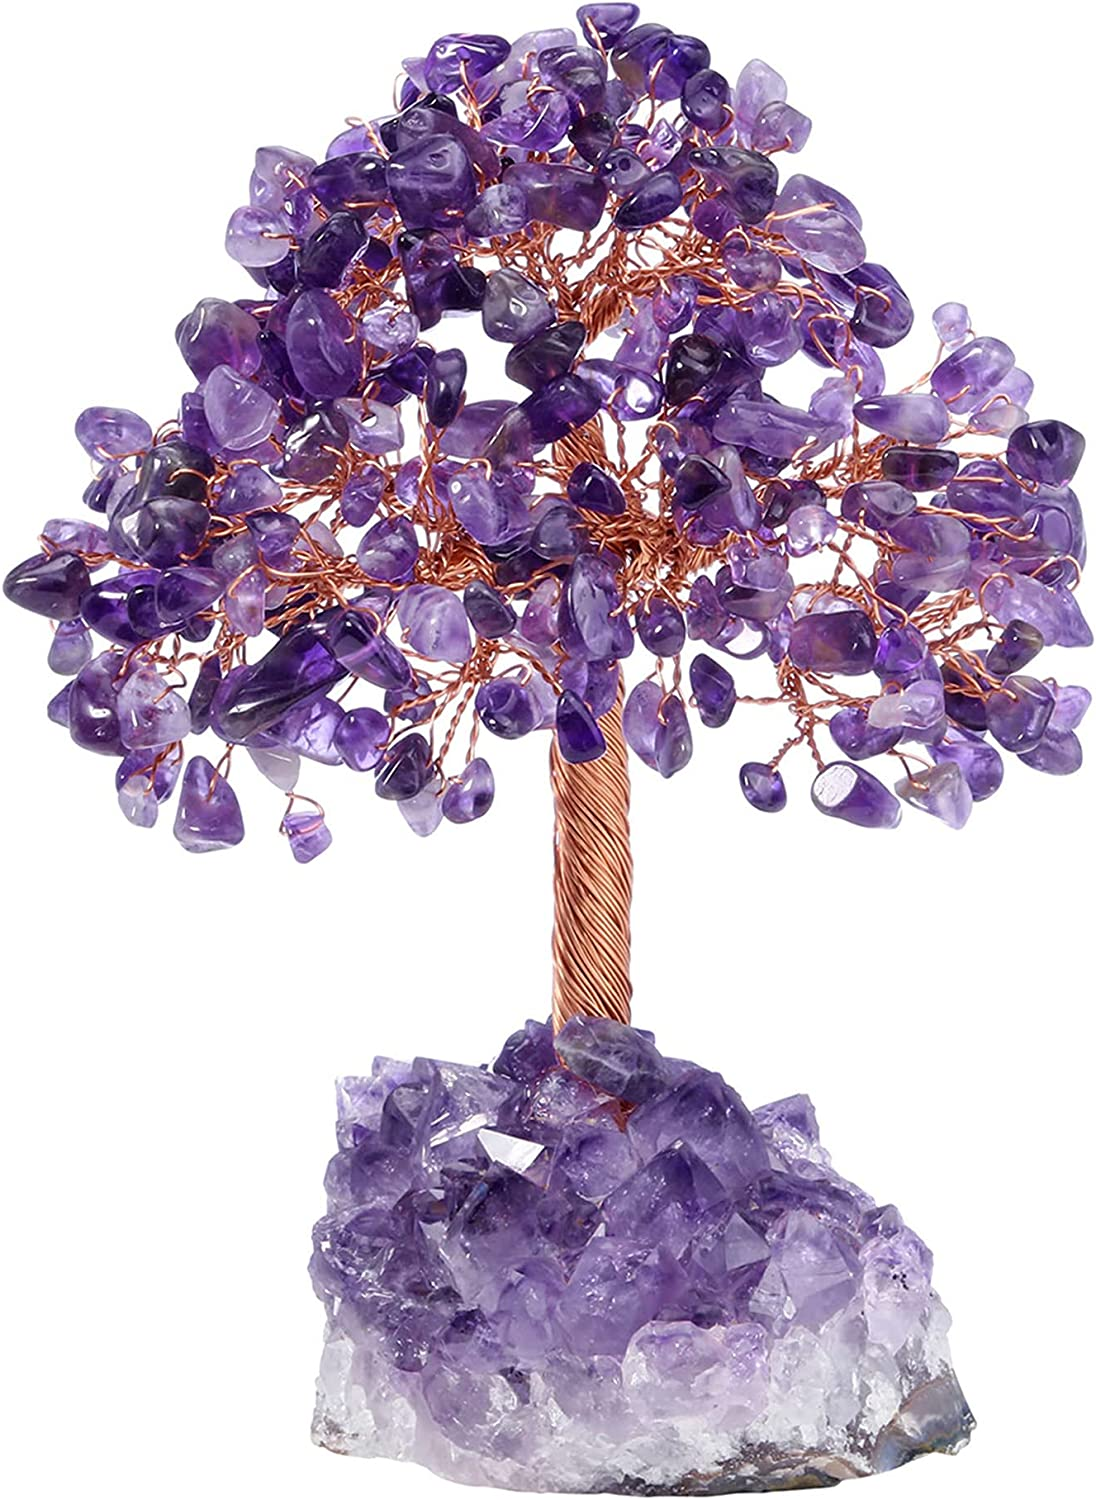 Top Plaza Amethyst Crystals Tree Healing Crystal Stones Wrapped on Natural Raw Amethyst Cluster Base Copper Money Tree Decor Home Indoor Office Desk Decoration